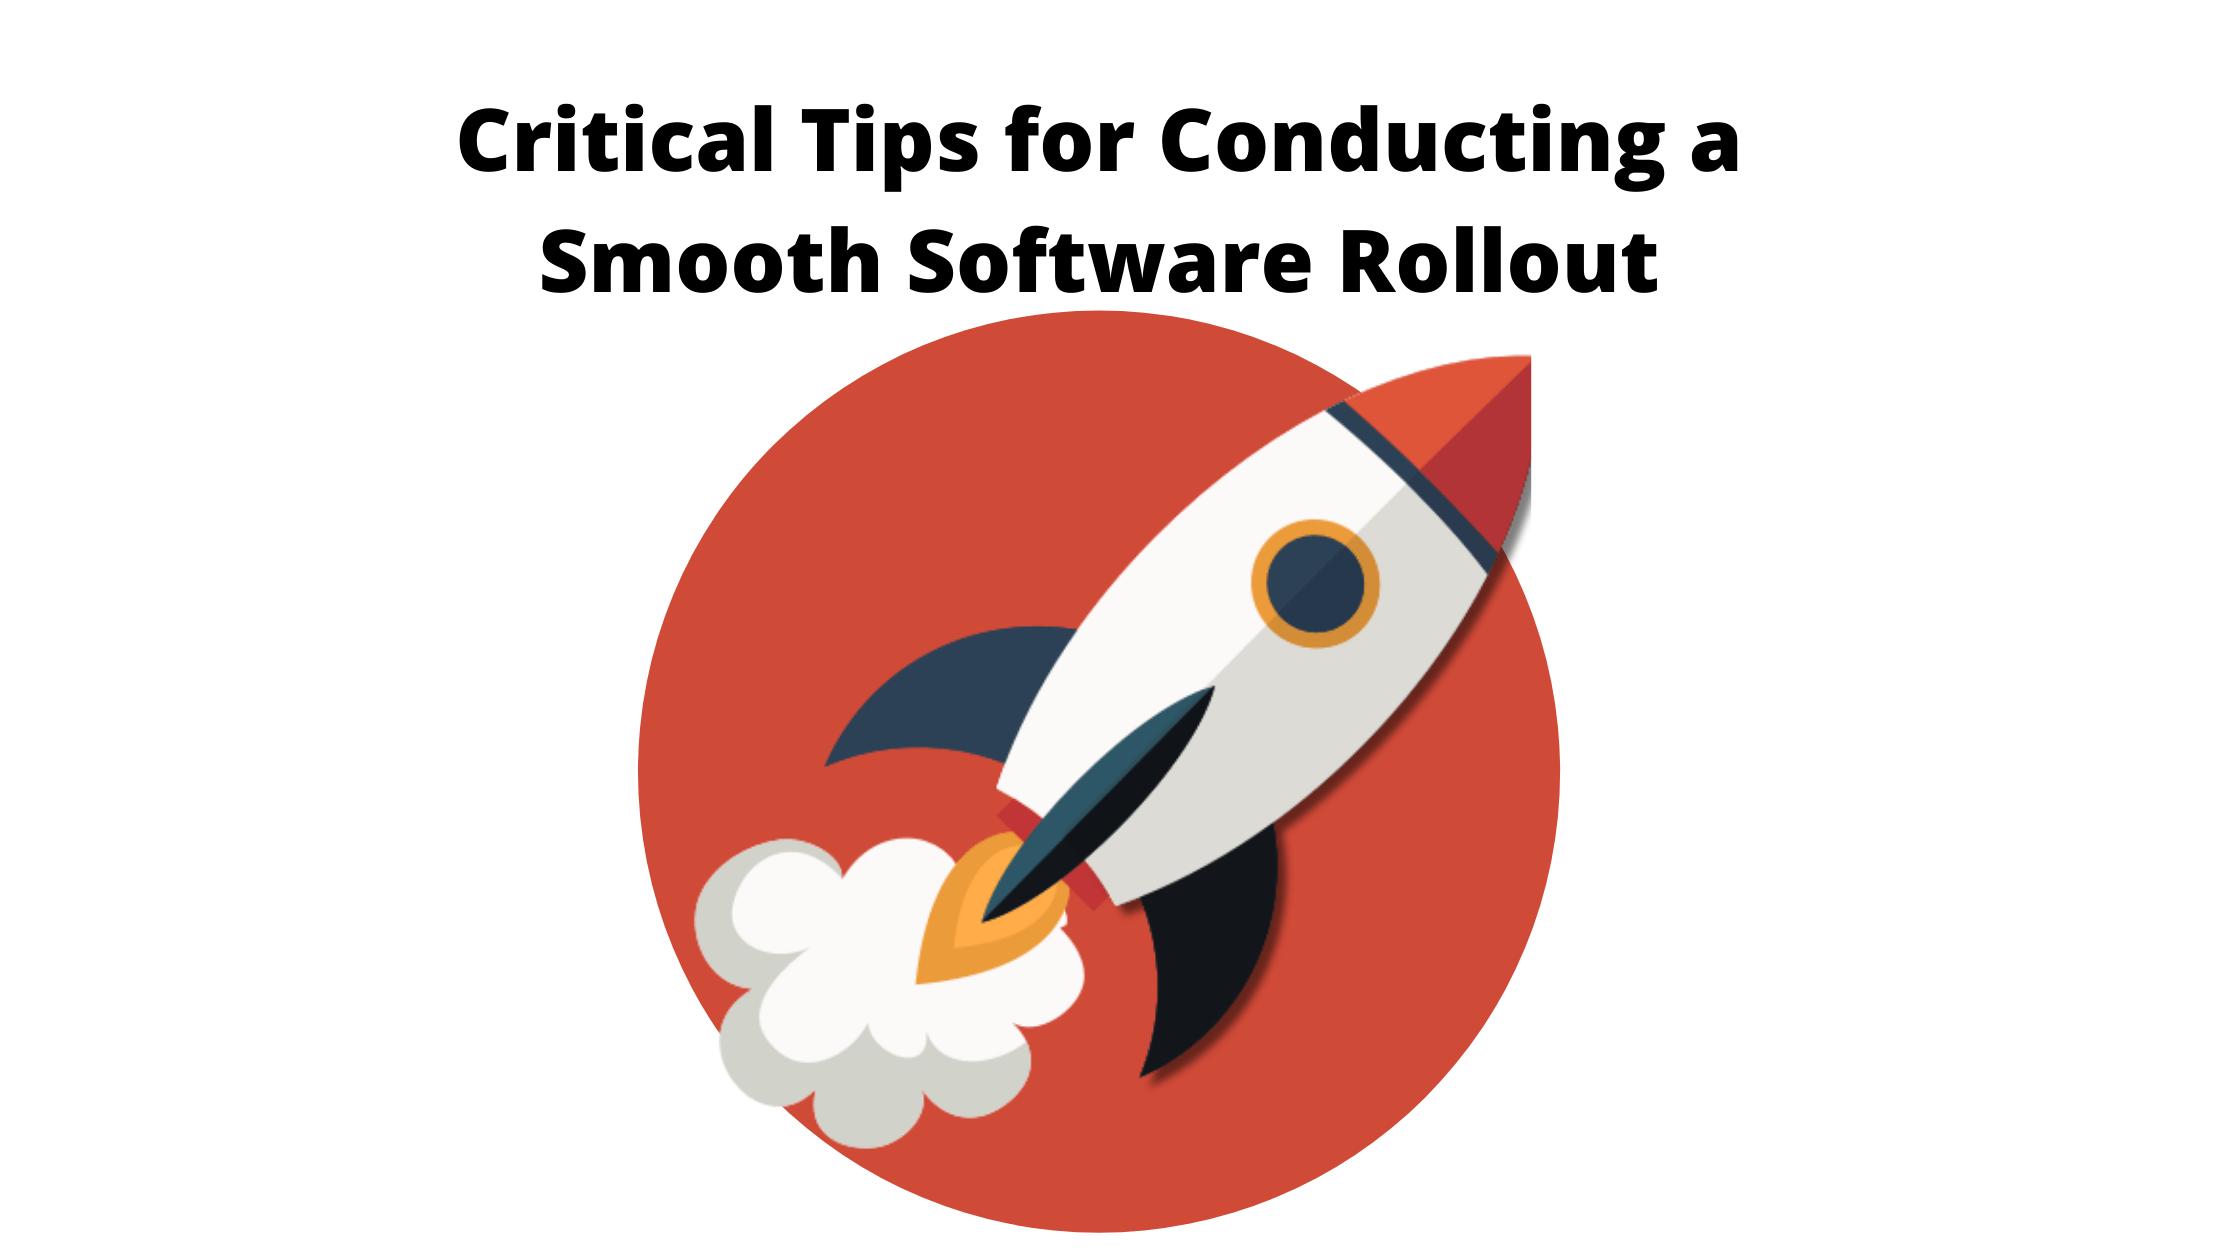 Critical Tips for smooth software rollout